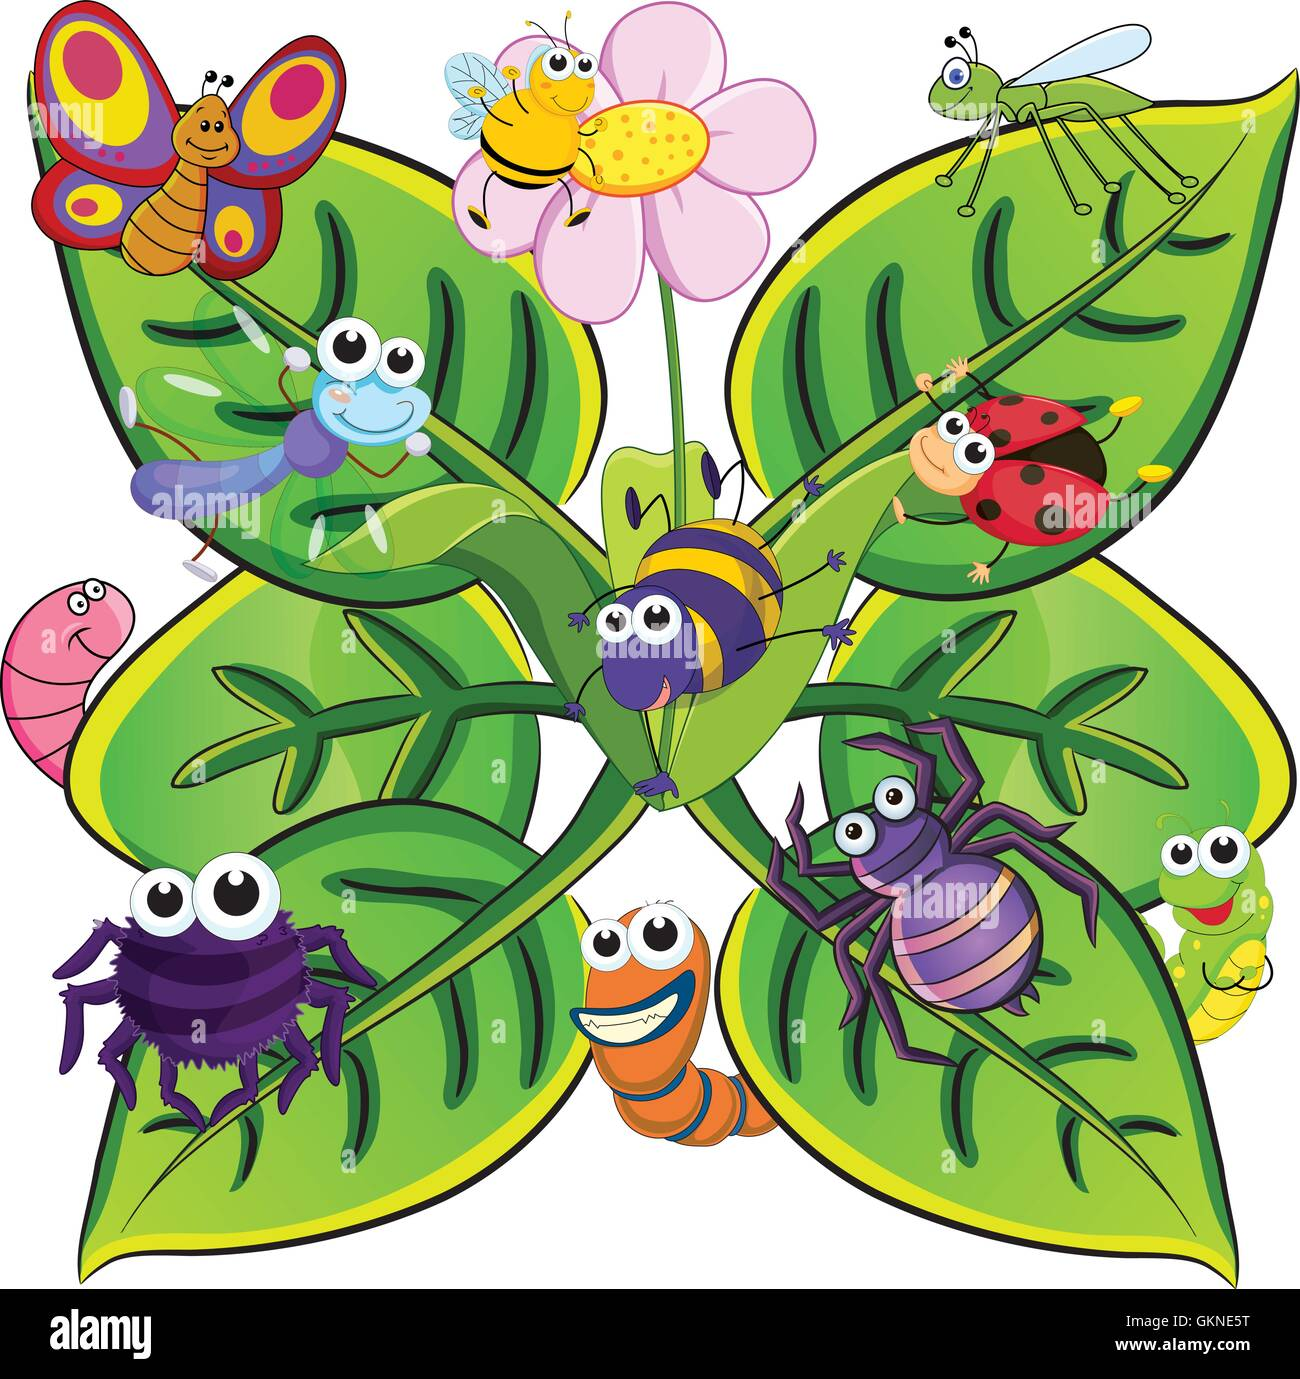 butterfly animals ants cartoon insect bee leaf graphics graphic